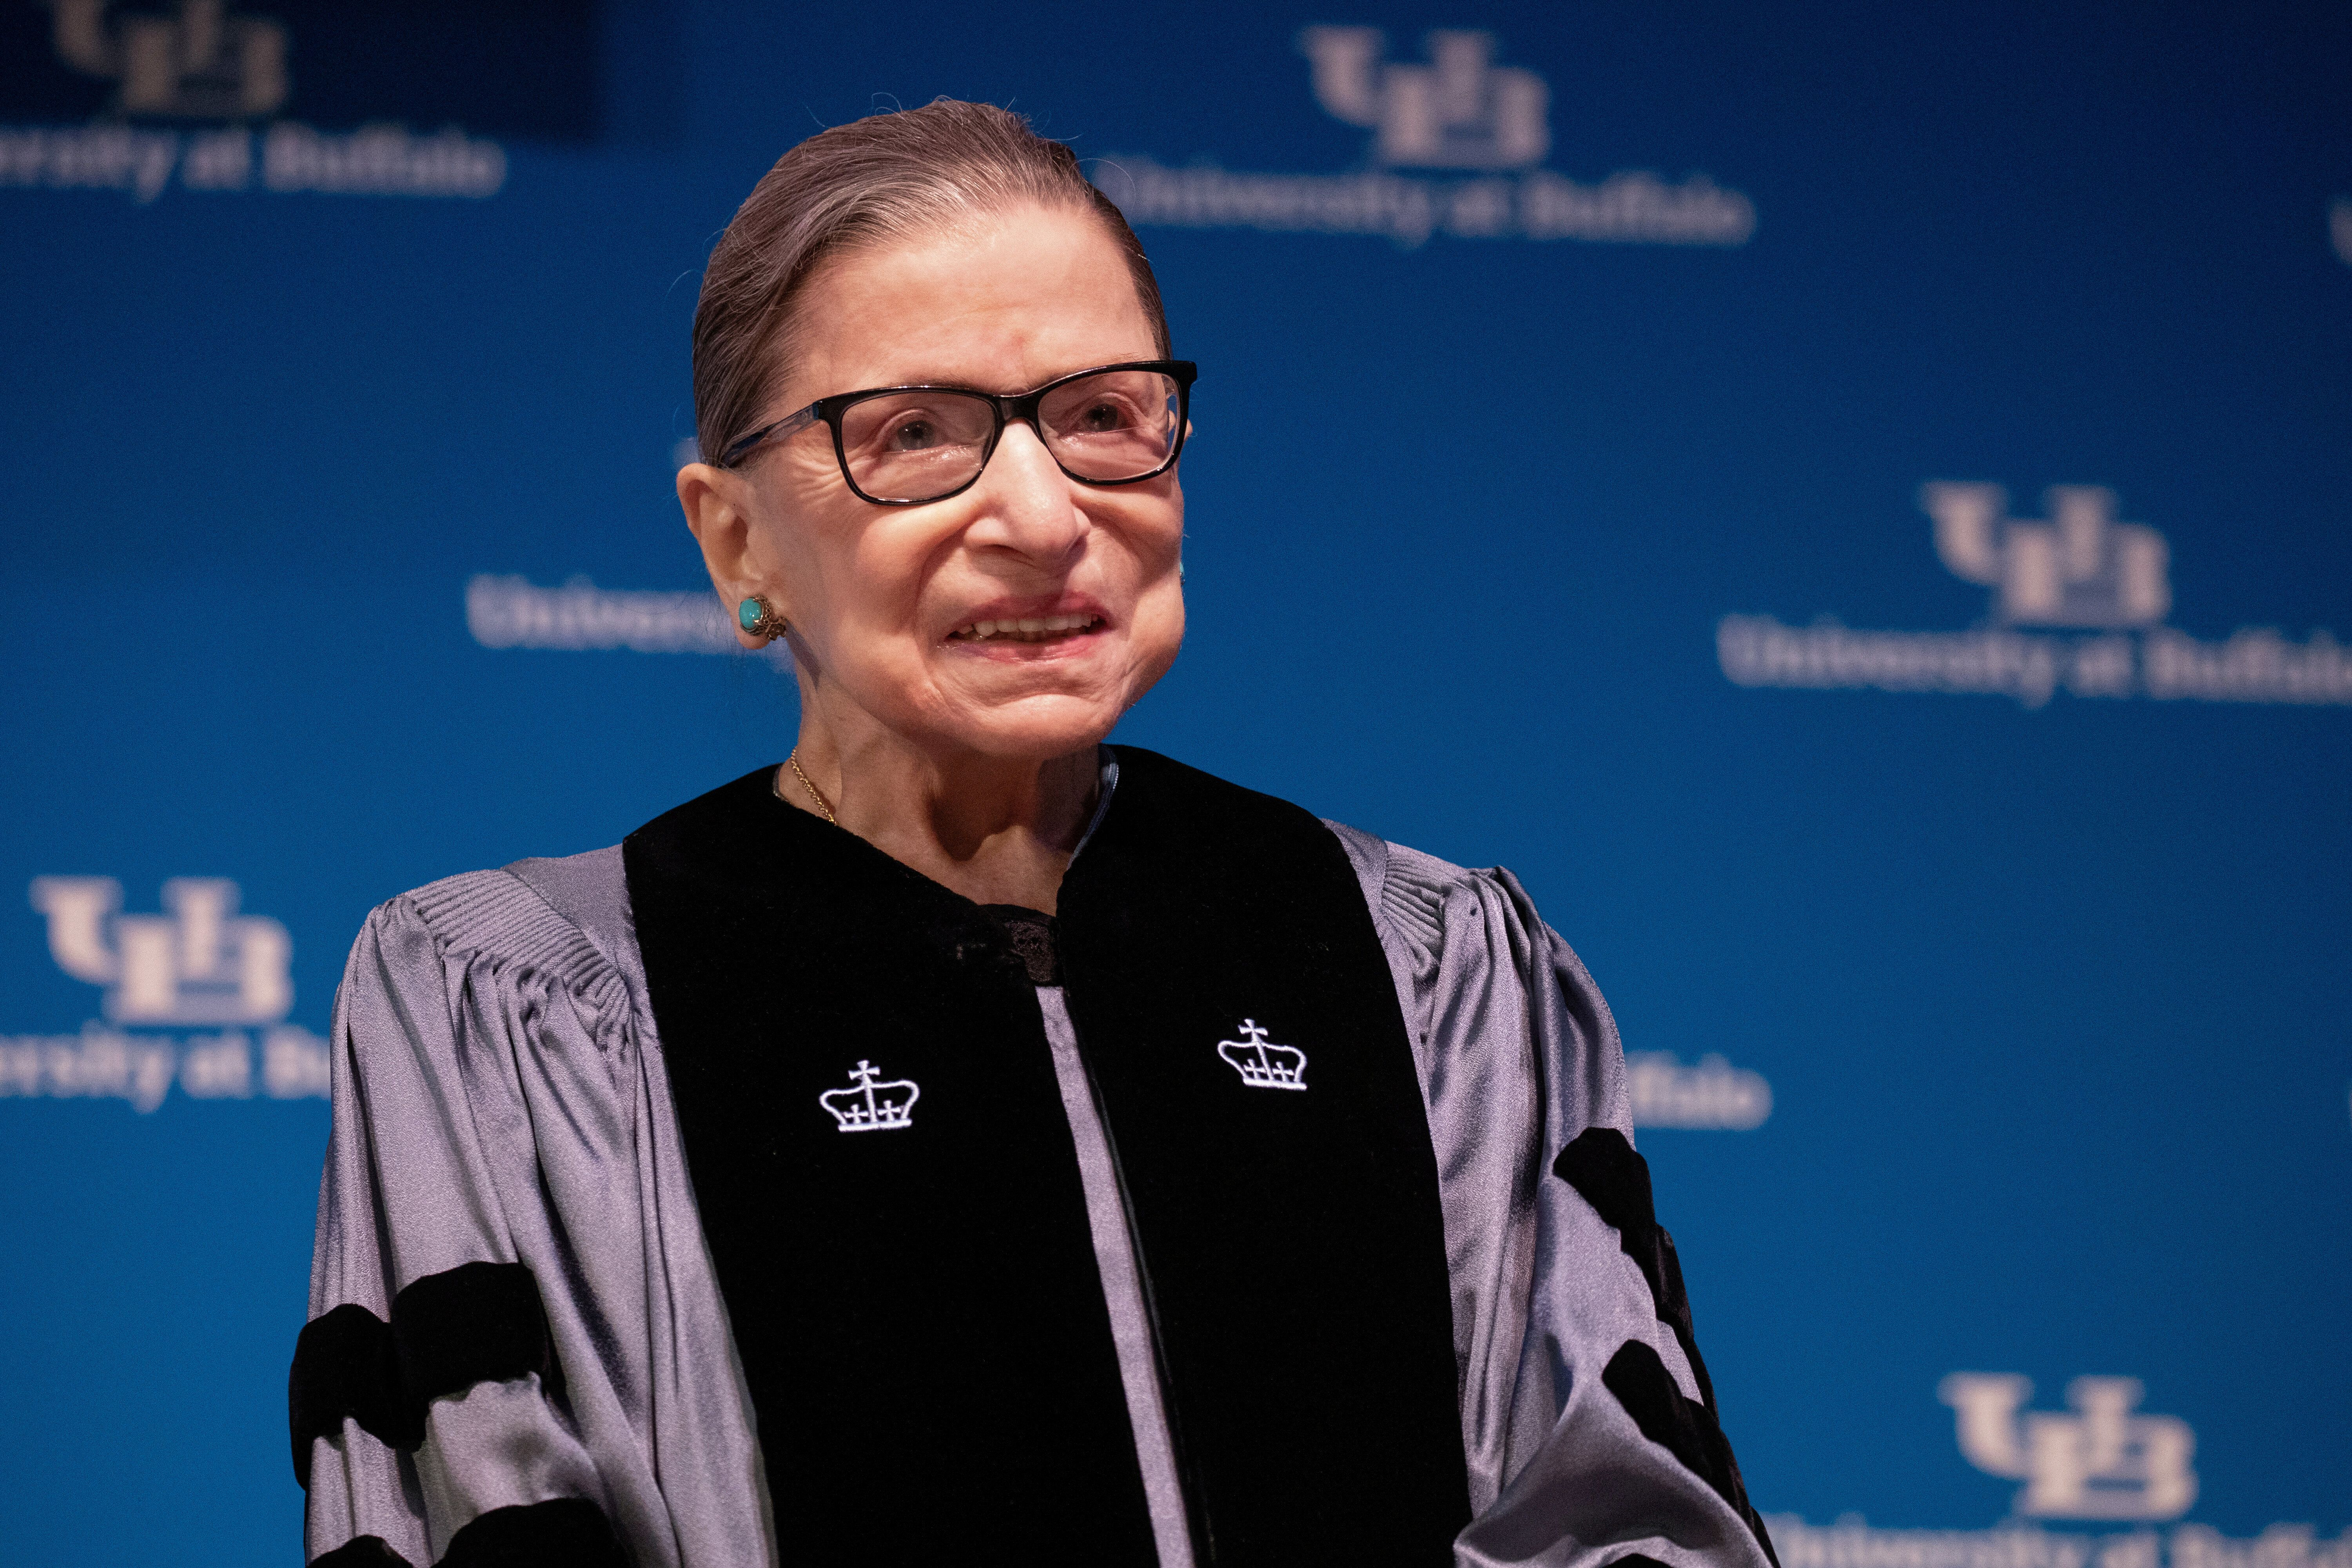 The late Supreme Court Justice Ruth Bader Ginsburg is being honored with a three-story street art mural in Manhattan.